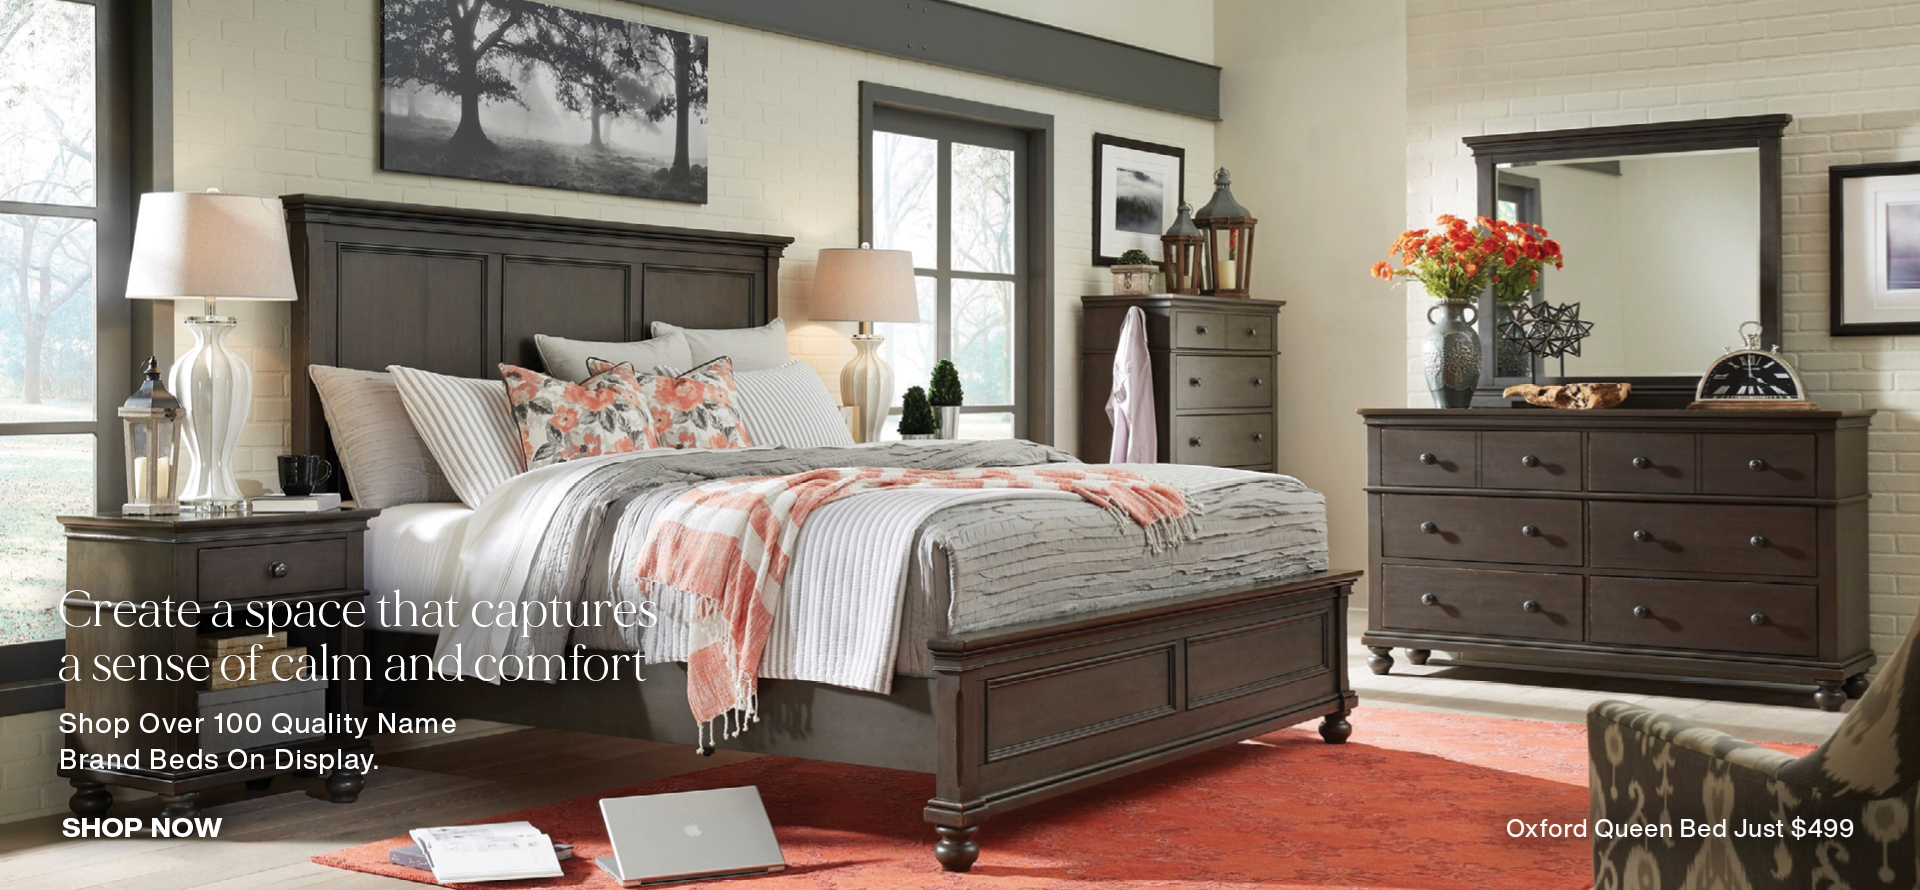 Shop the area's largest selection of beds